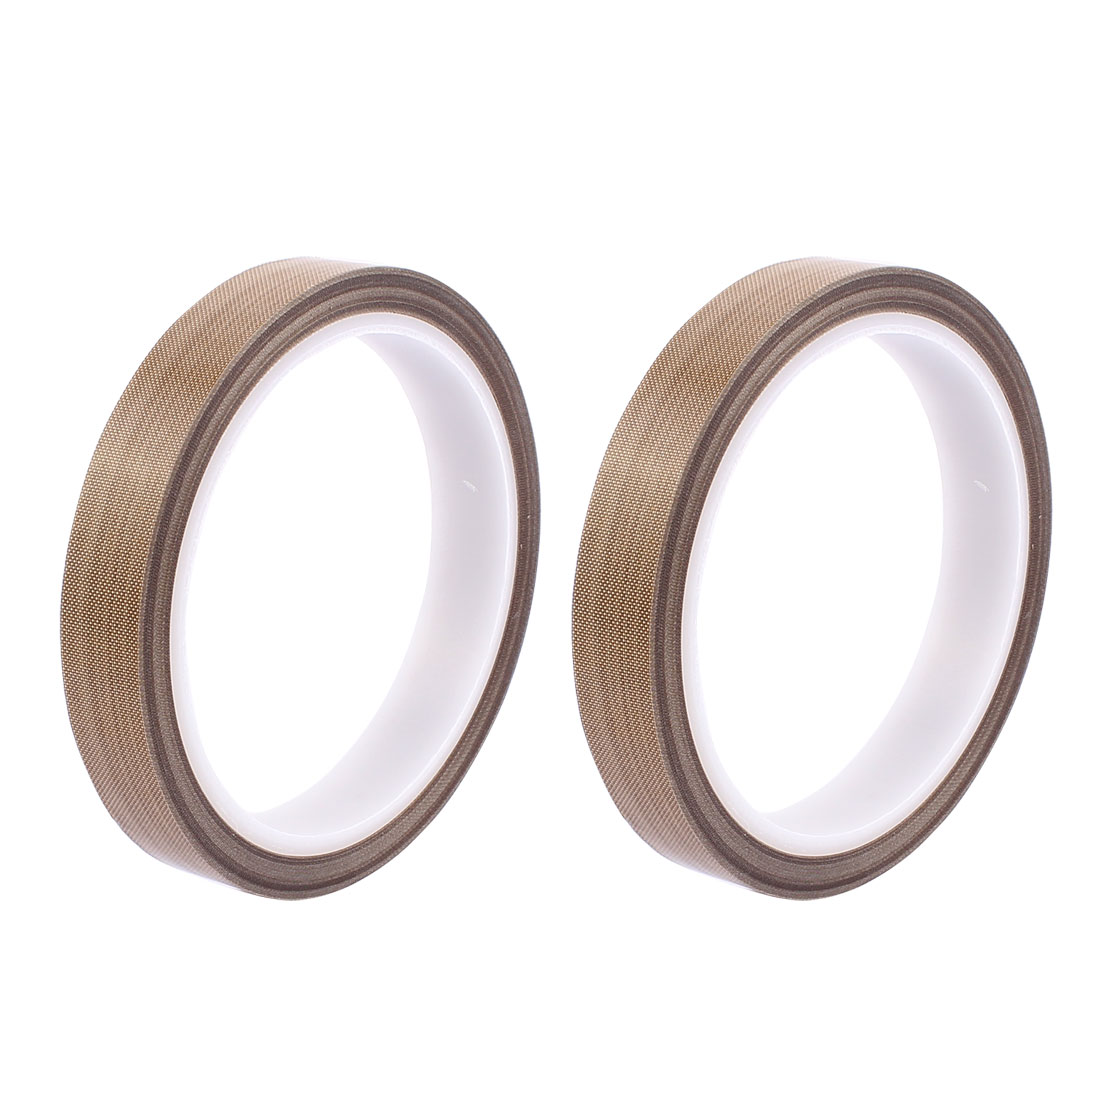 2pcs 0.18mm x 12mm Nonstick High Temperature PTFE Adhesive Tape 10M Length